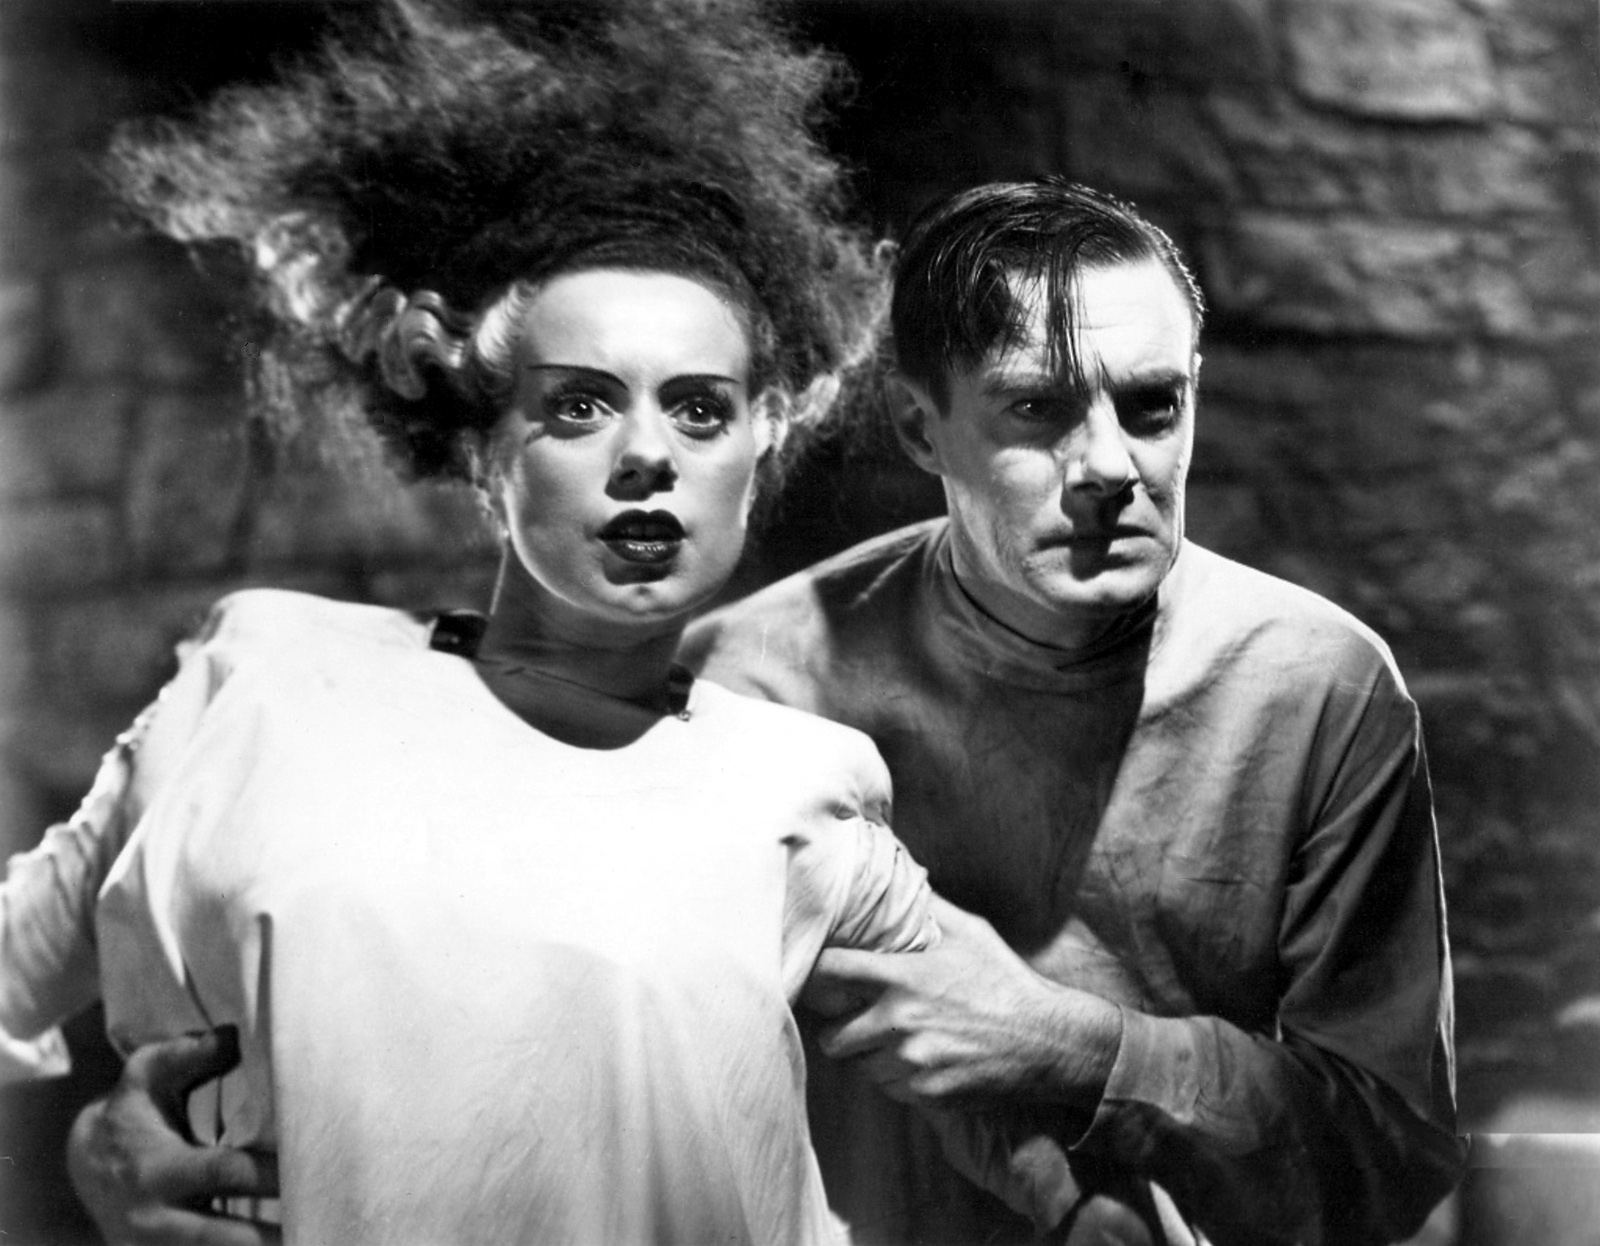 http://2.bp.blogspot.com/_iqde5Op1Cy8/TQ7p6pdu_GI/AAAAAAAAAU4/IS-itZWI4YE/s1600/the+bride+of+frankenstein+3.jpg